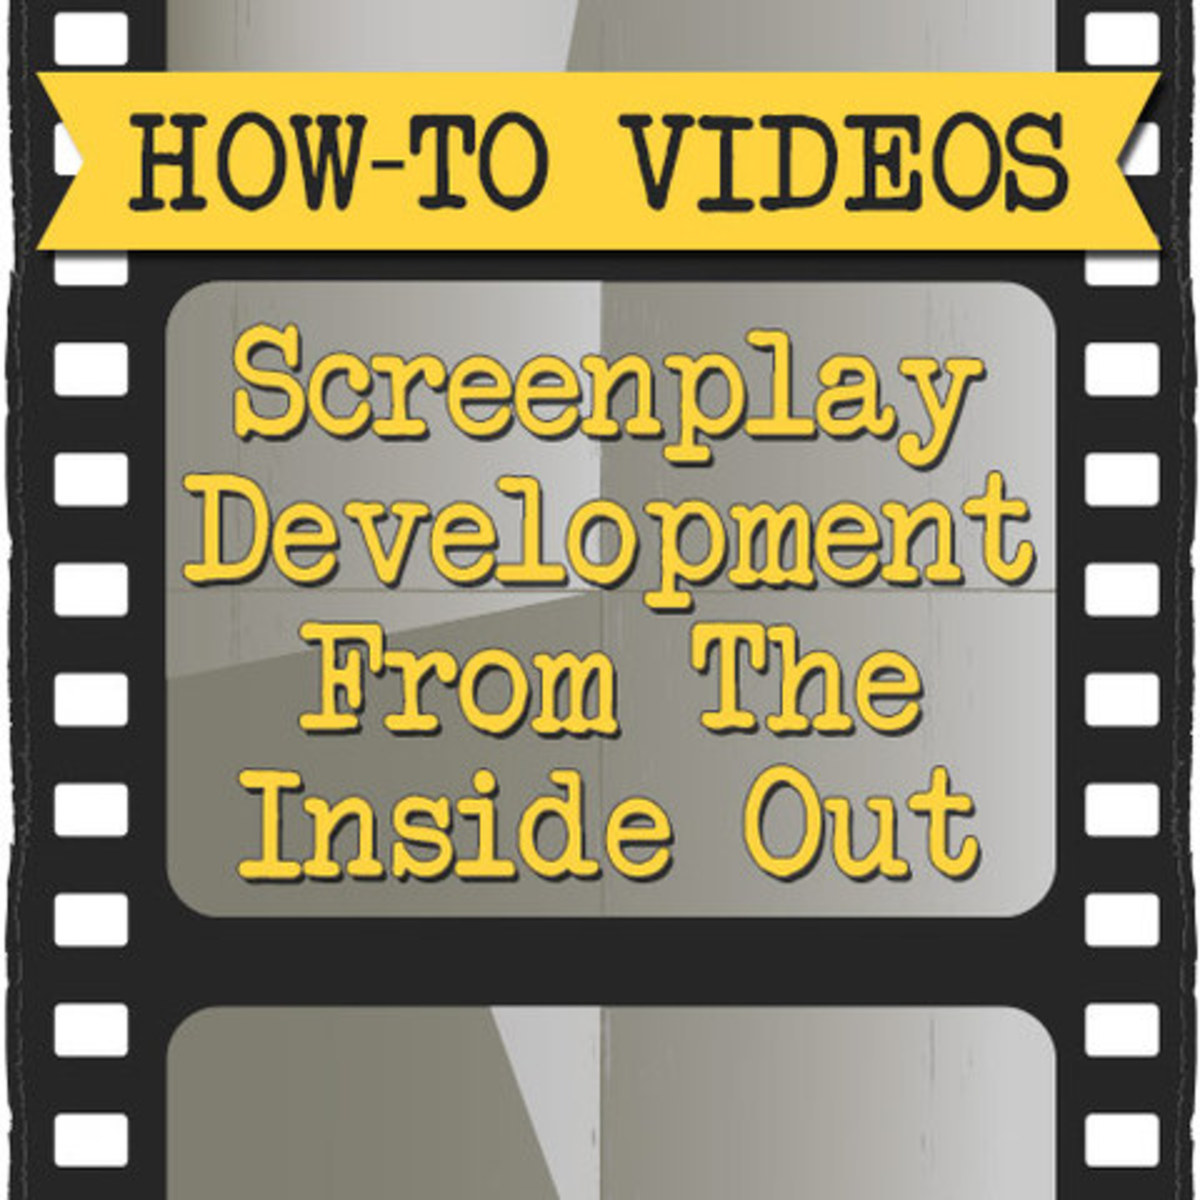 ws_how to videos-500-sscreenplay_development